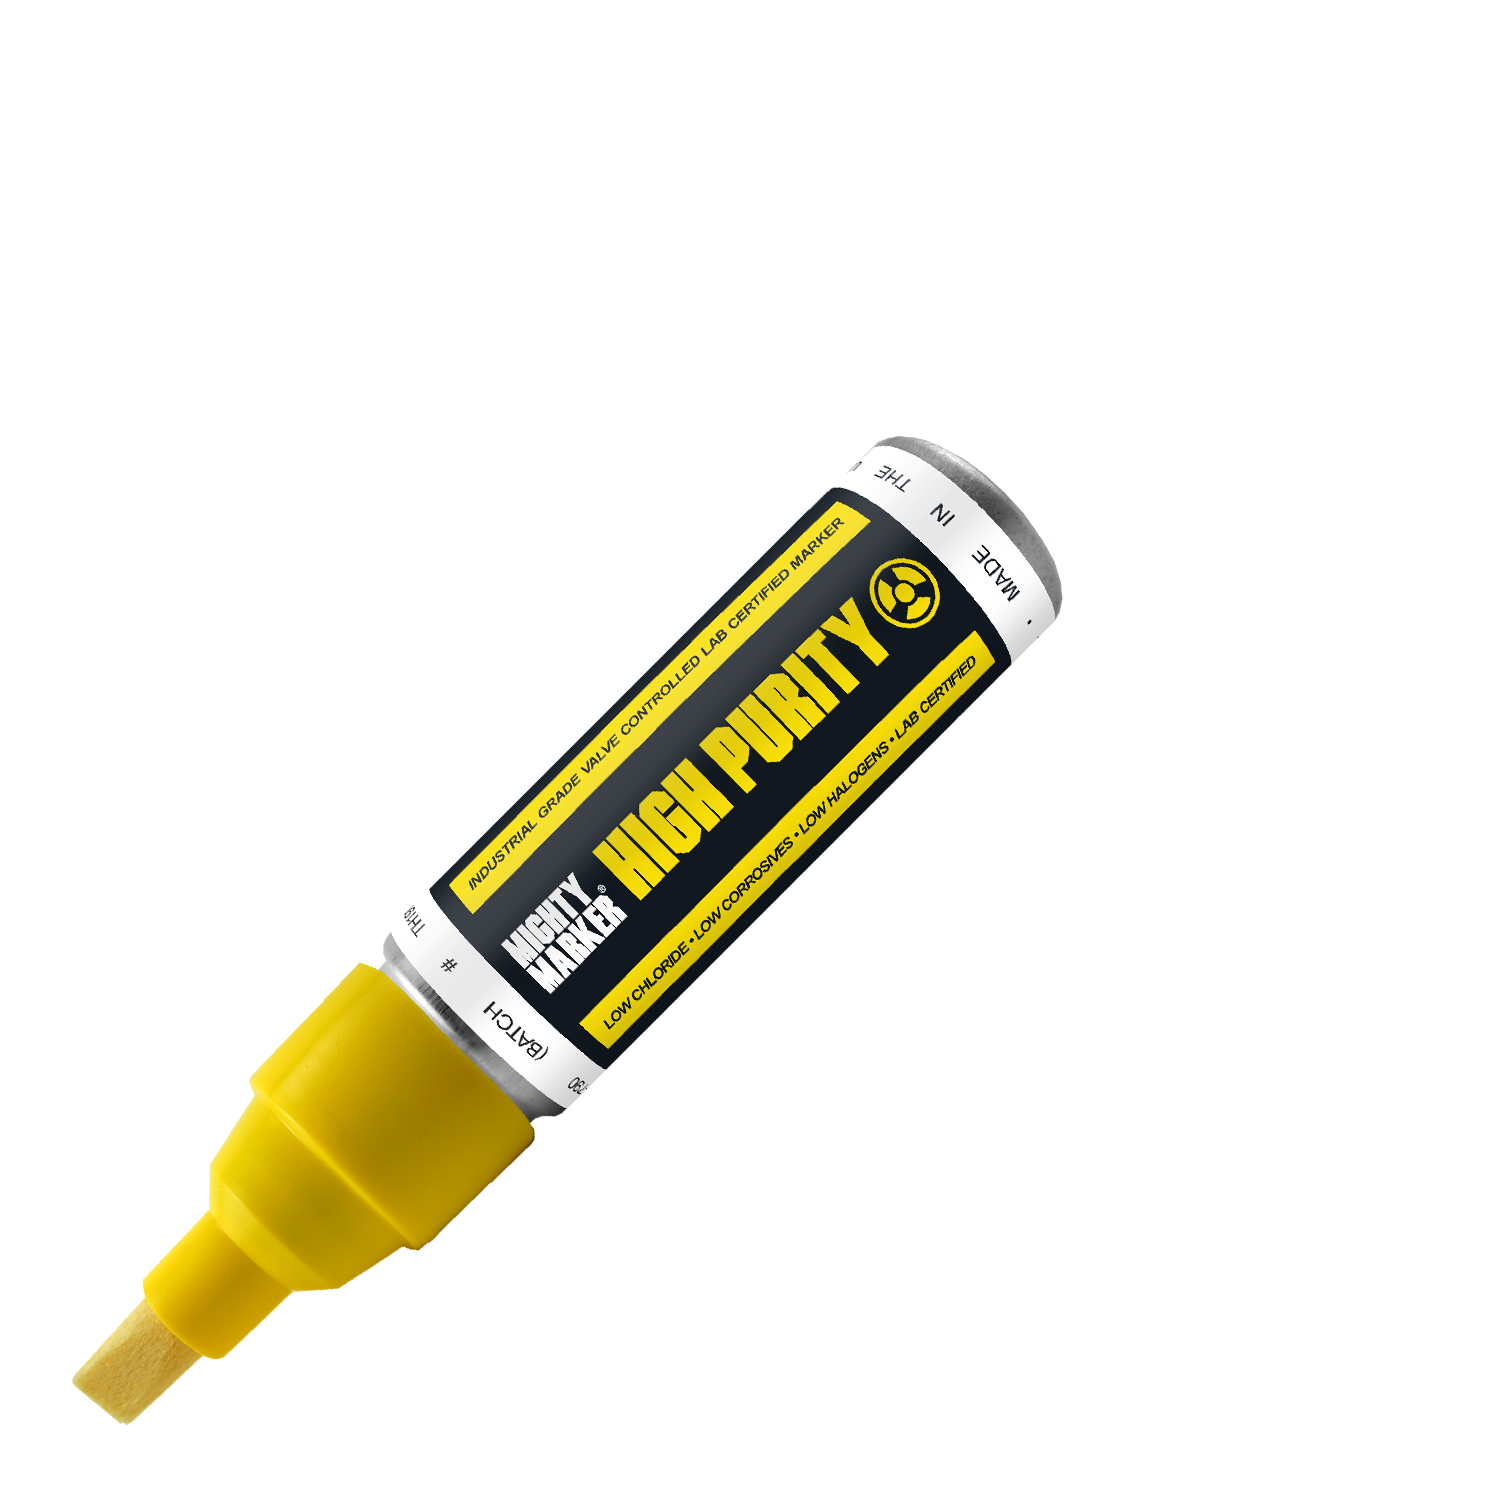 mm09 shorty laboratory certified marker